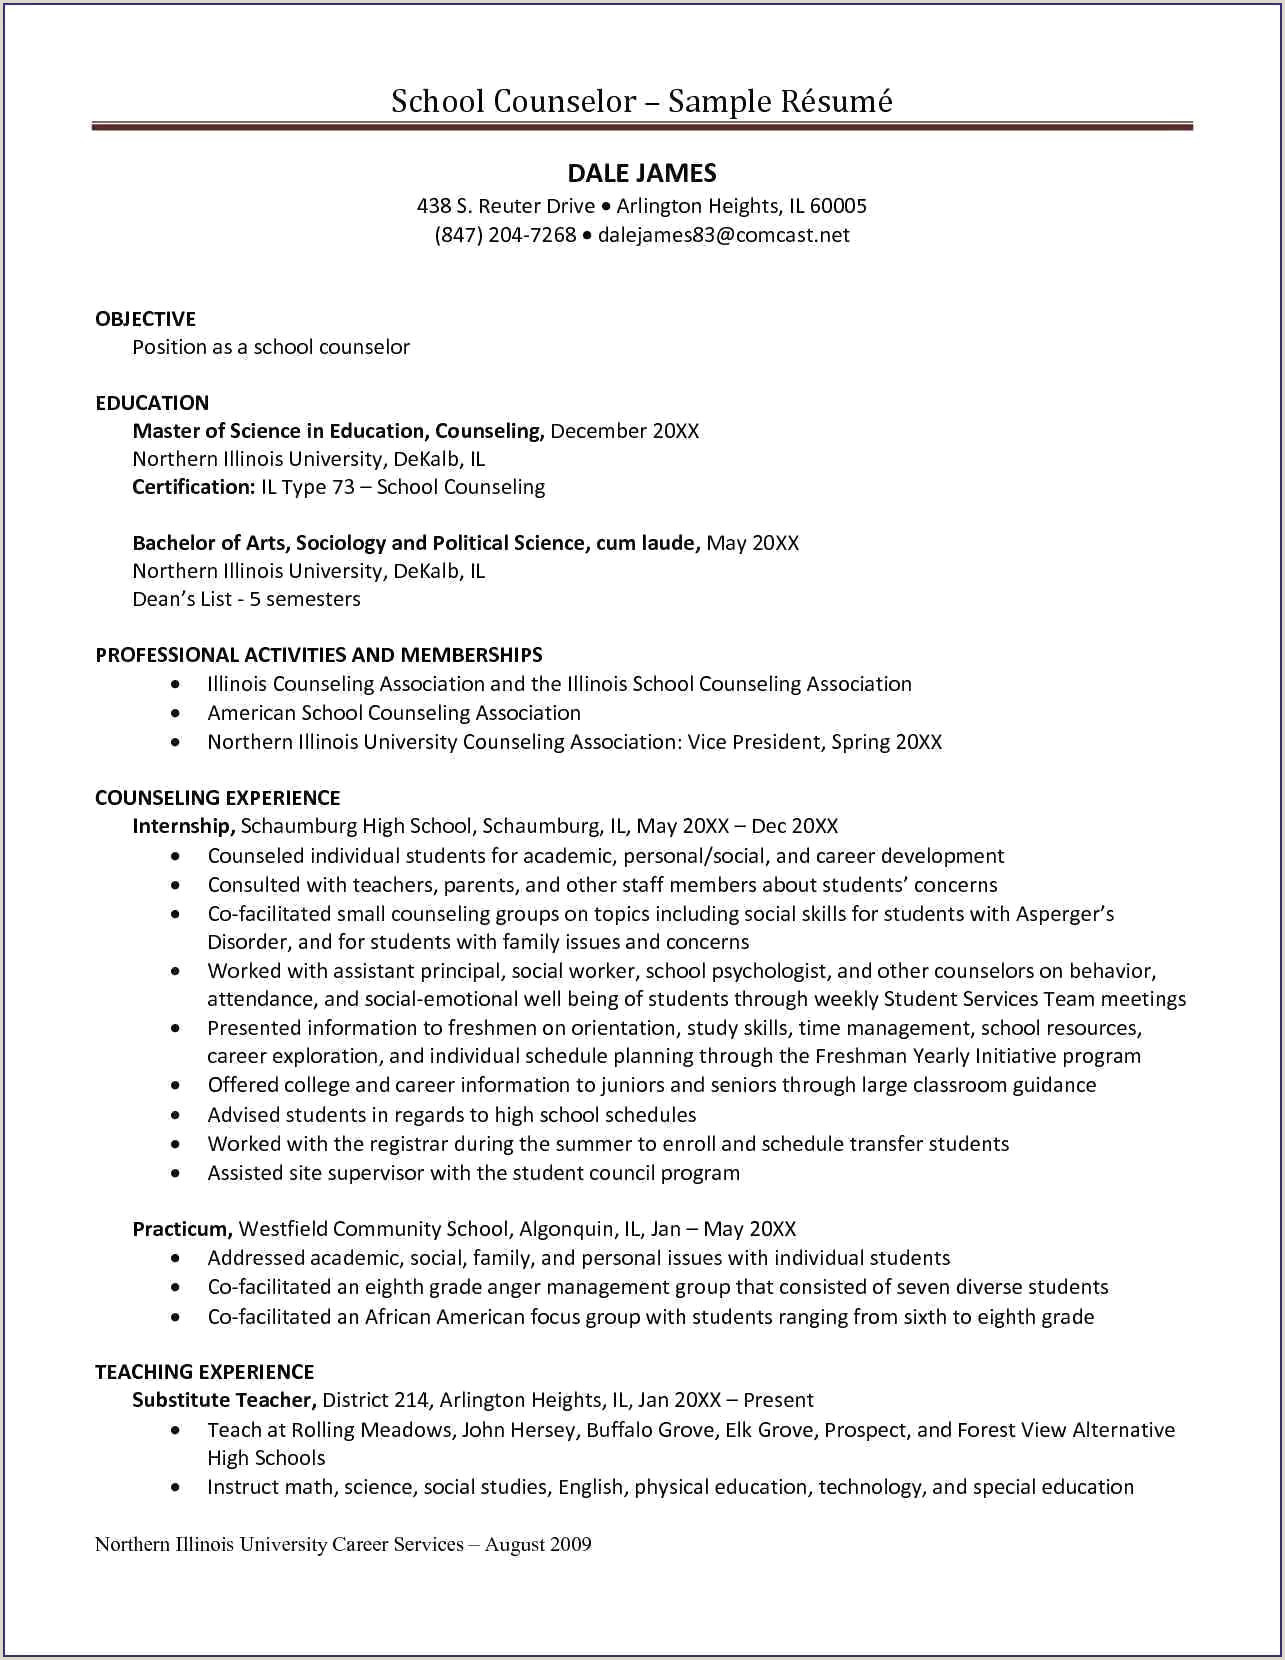 School Counselor Resume Samples Residential Counselor Resume Example New Mental Health